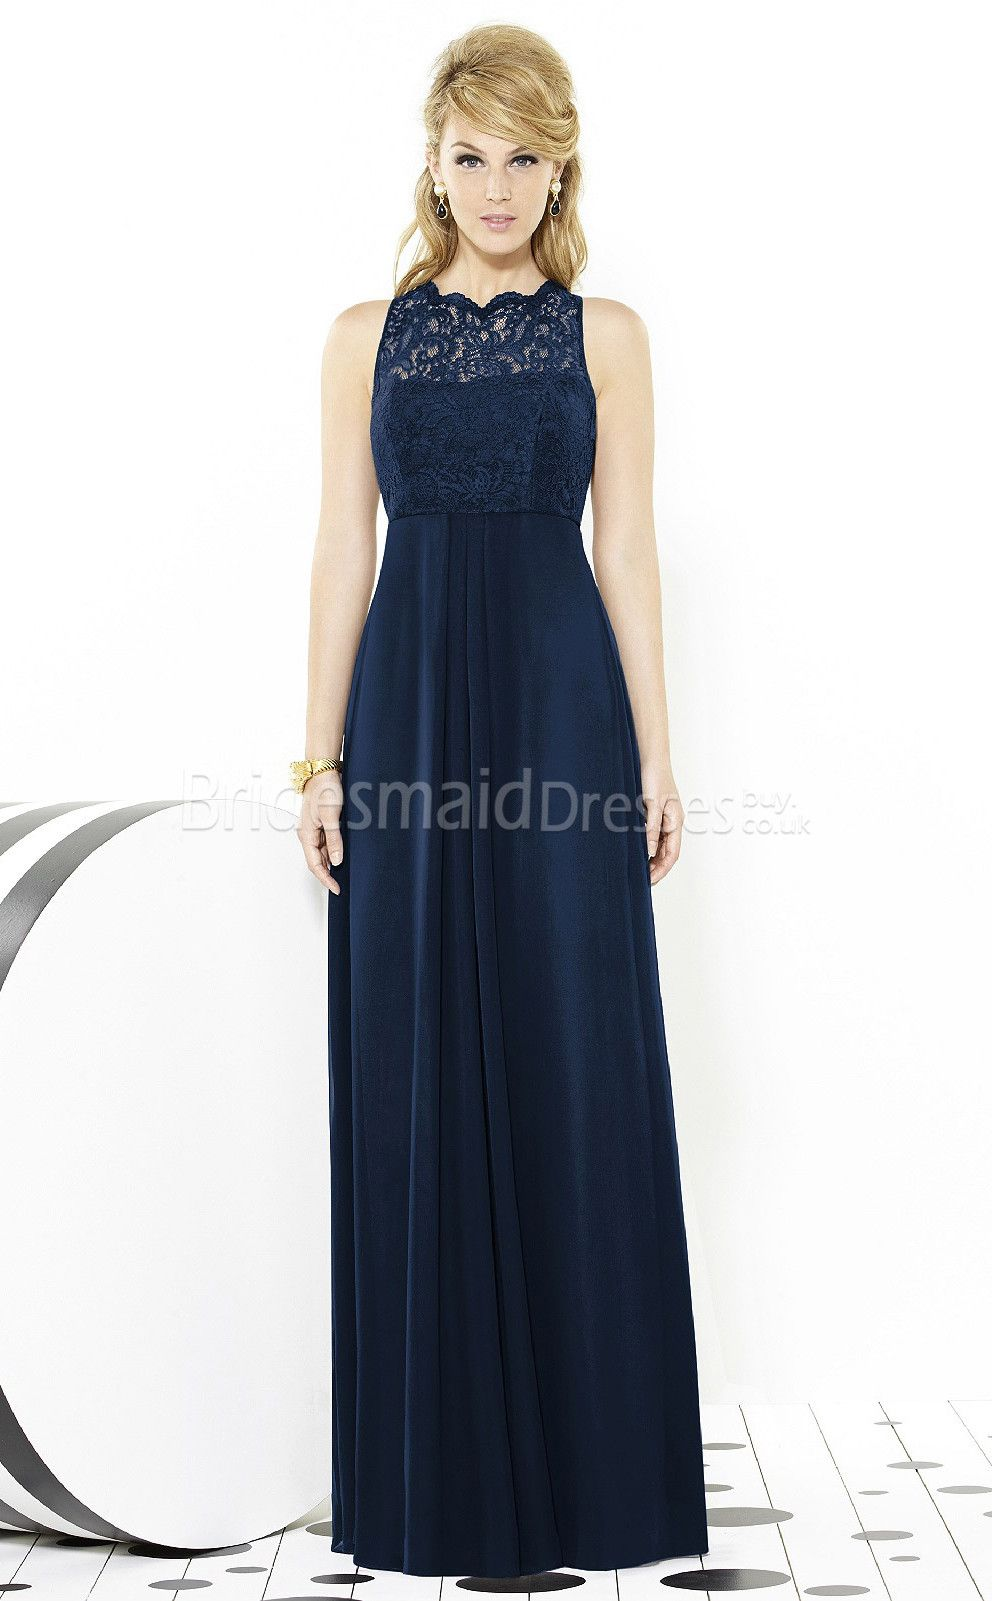 Dark navy scalloped neck lace charmeuse bridesmaid dress ukbd03 dark navy scalloped neck lace charmeuse bridesmaid dress ukbd03 1360 navy blue bridesmaidsmidnight ombrellifo Images